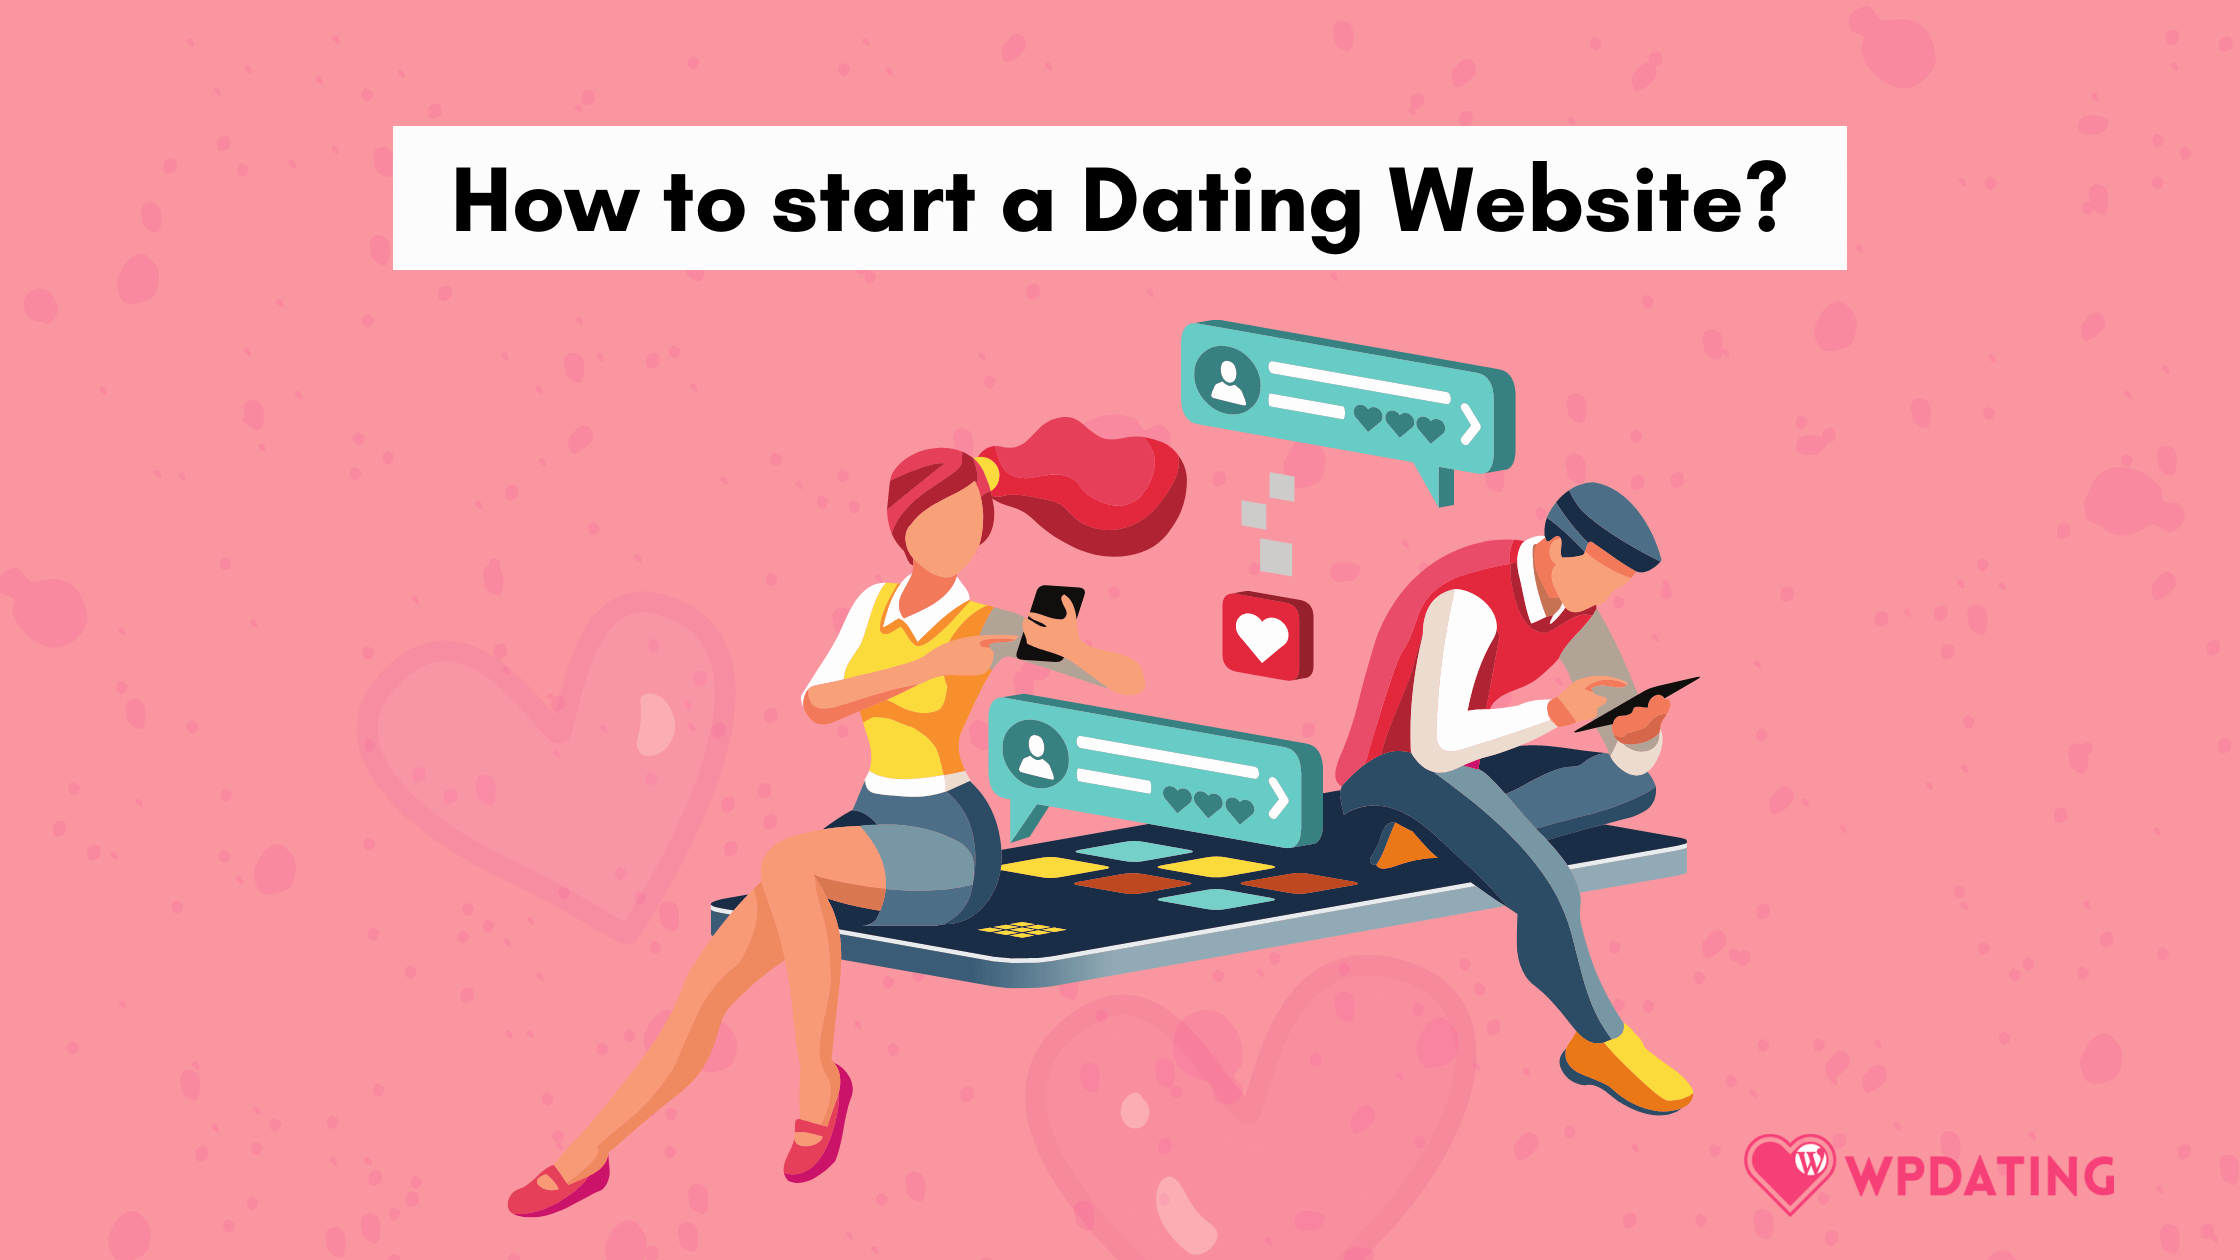 A detailed guide on how to start a dating website